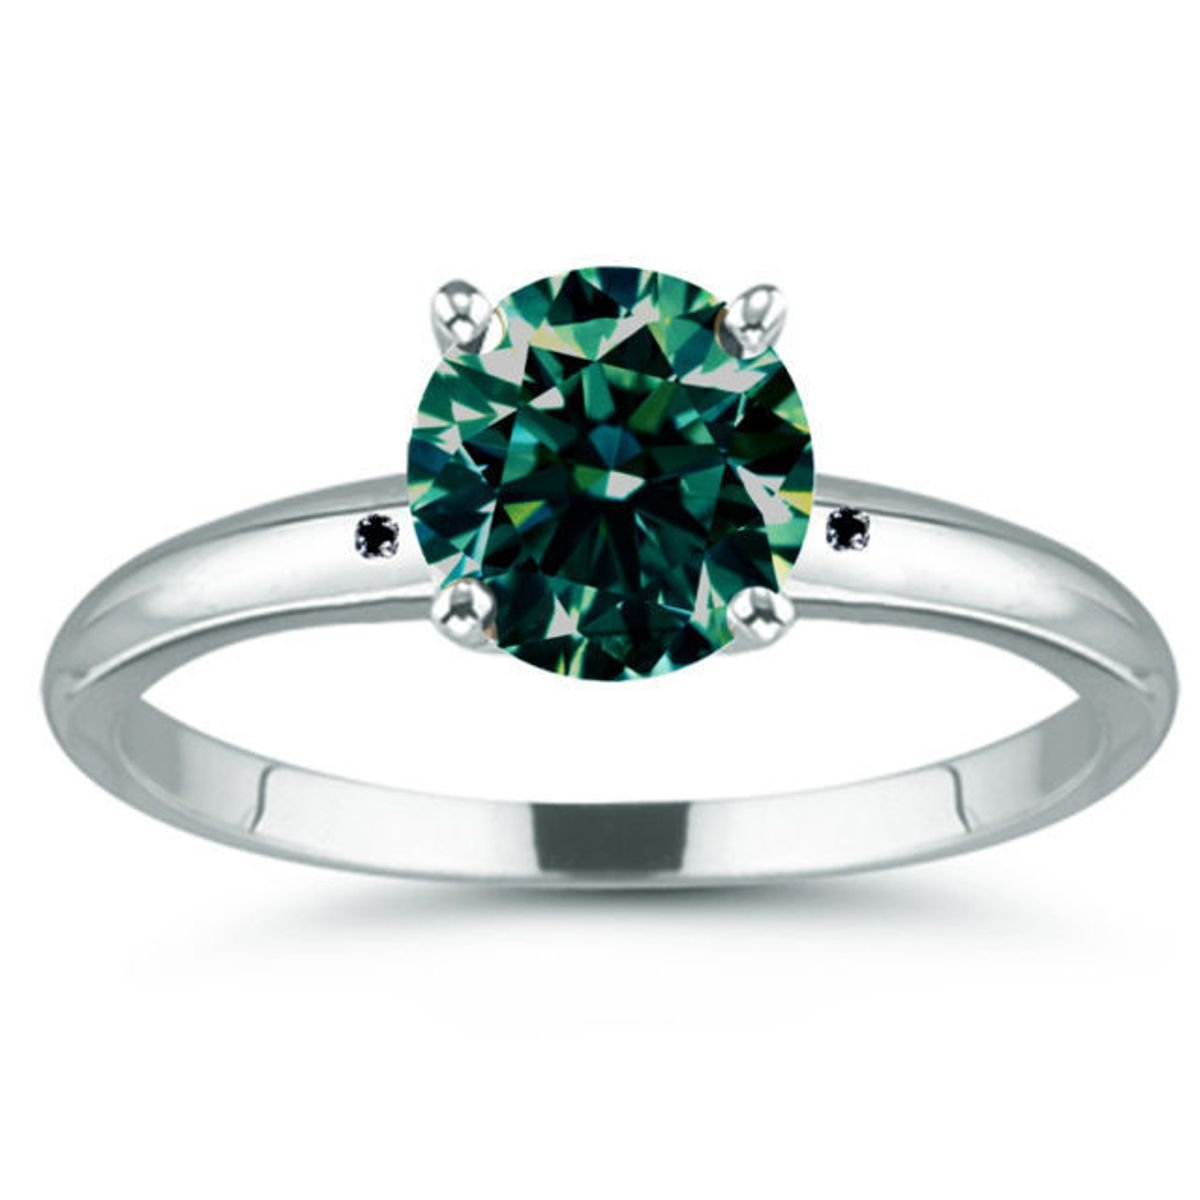 RINGJEWEL 4.38 ct I1 Round Moissanite Solitaire Silver Plated Engagement Ring Blue Green Color Size 7